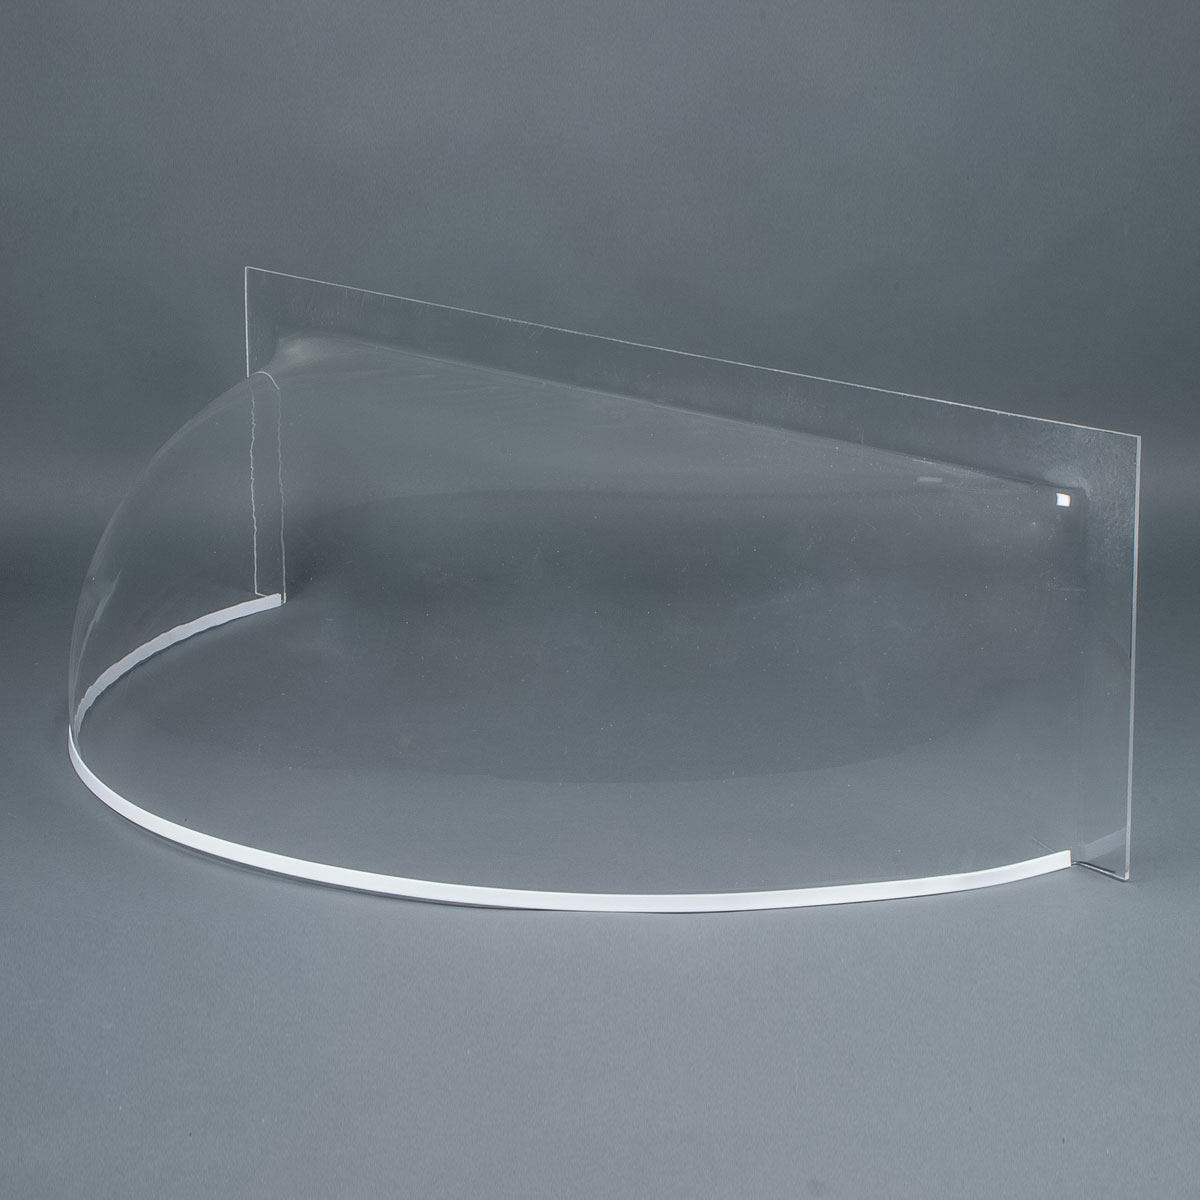 "Clear 3/16"" round front cast acrylic bubble window well cover"